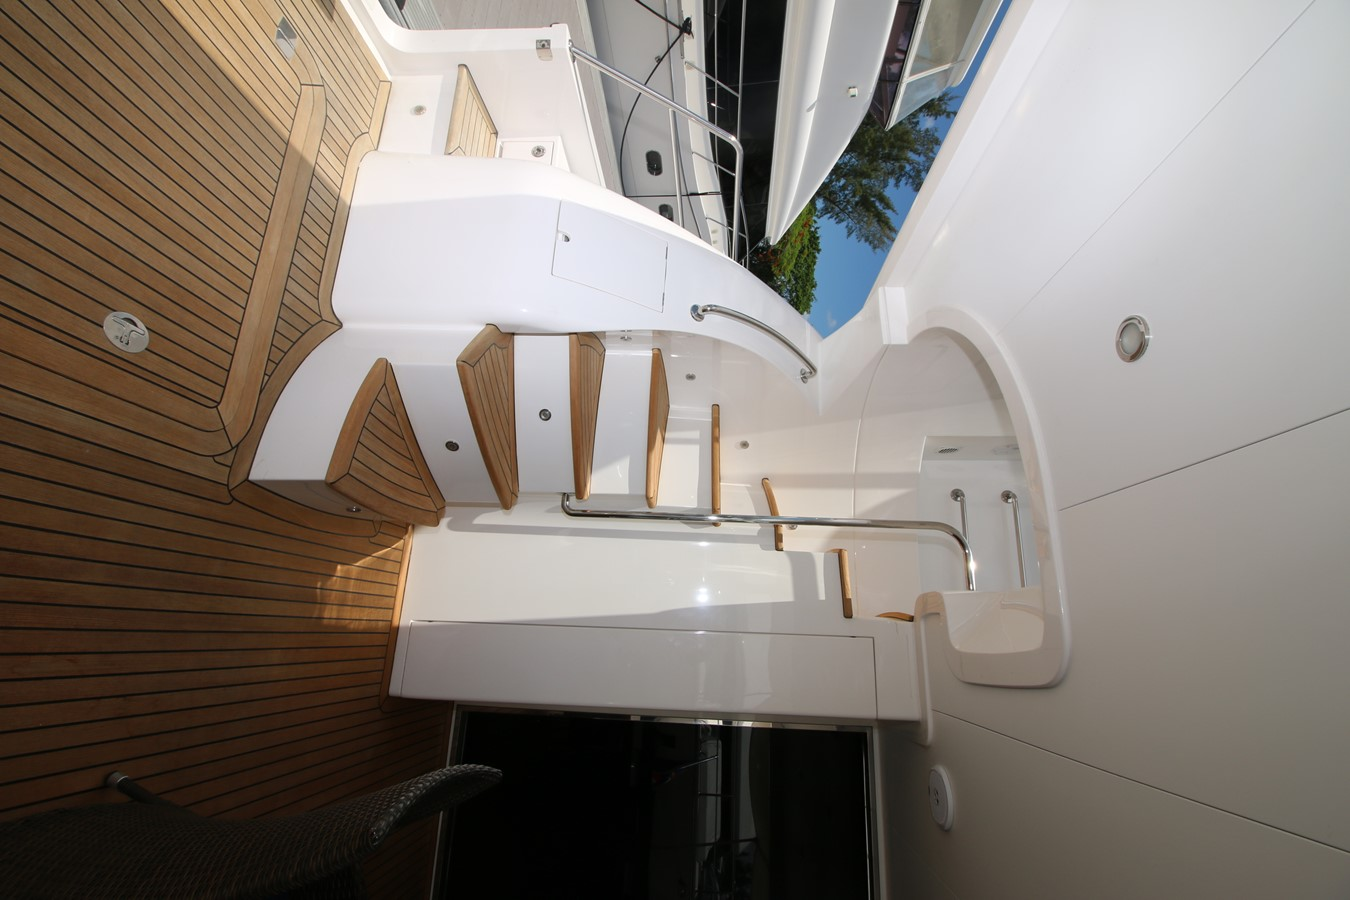 FLY BRIDGE ACCESS  2014 HORIZON PC60 SKYLOUNGE Catamaran 2547233